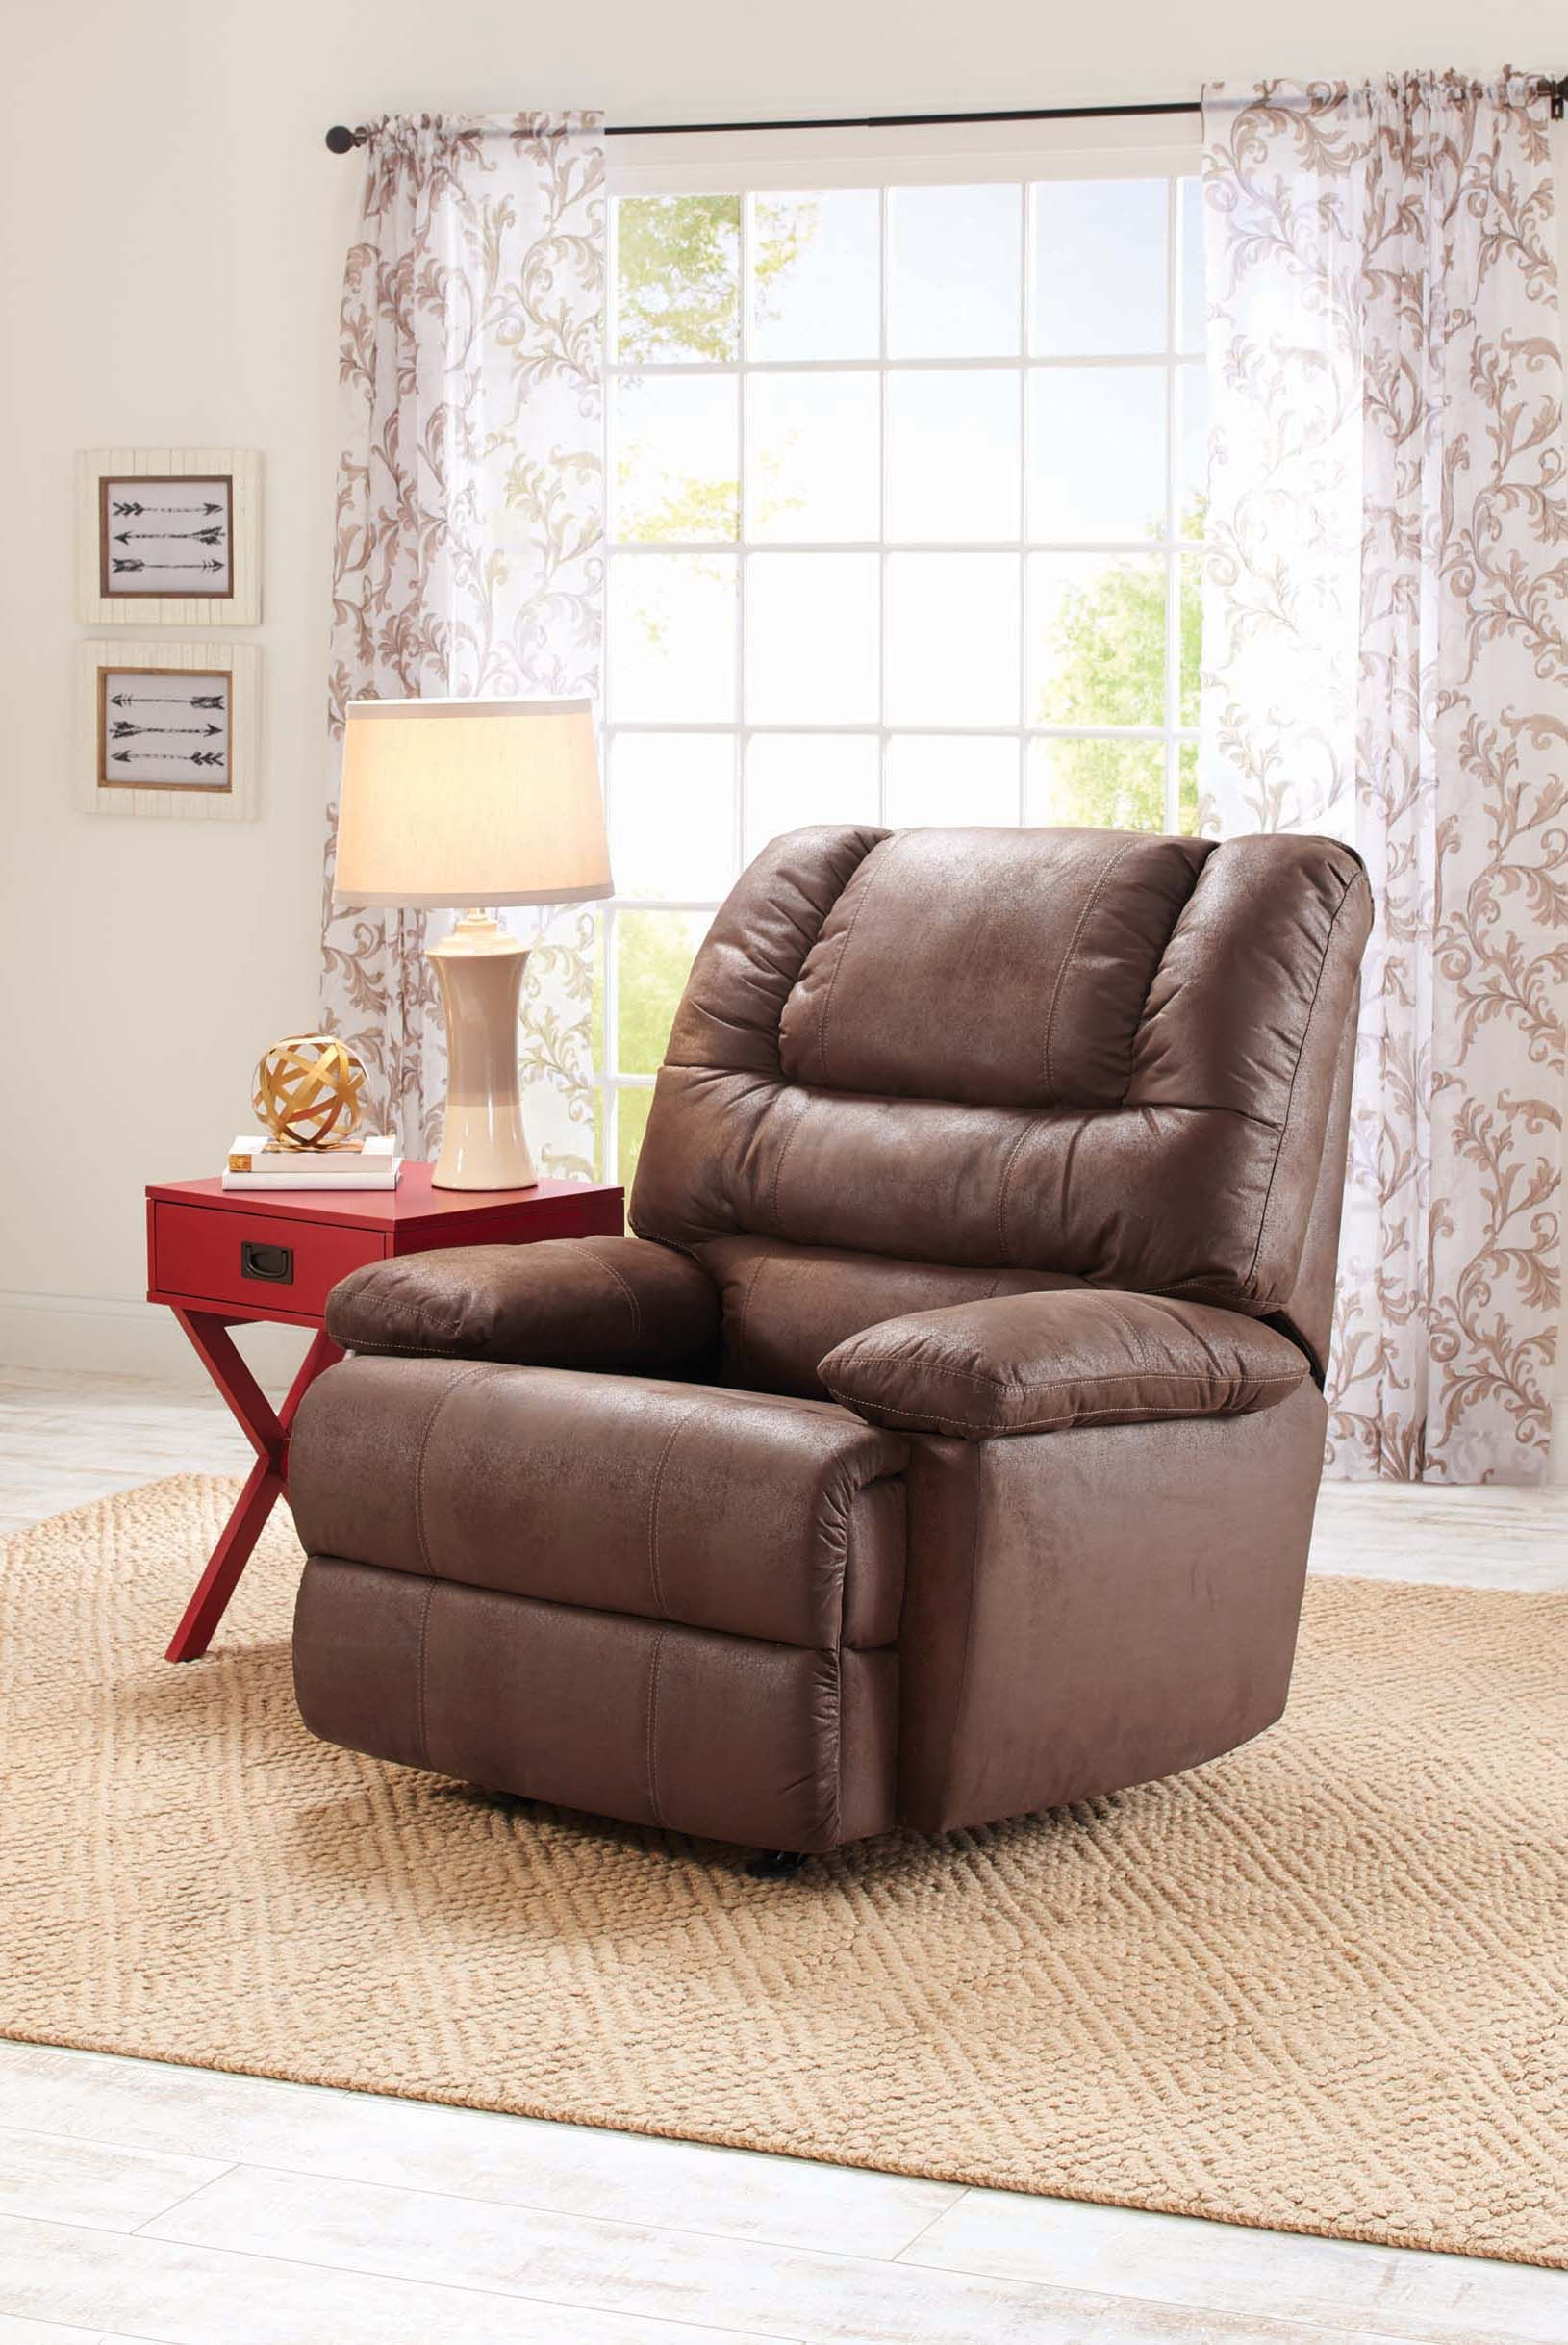 Kick back in the Deluxe Recliner and turn on the football